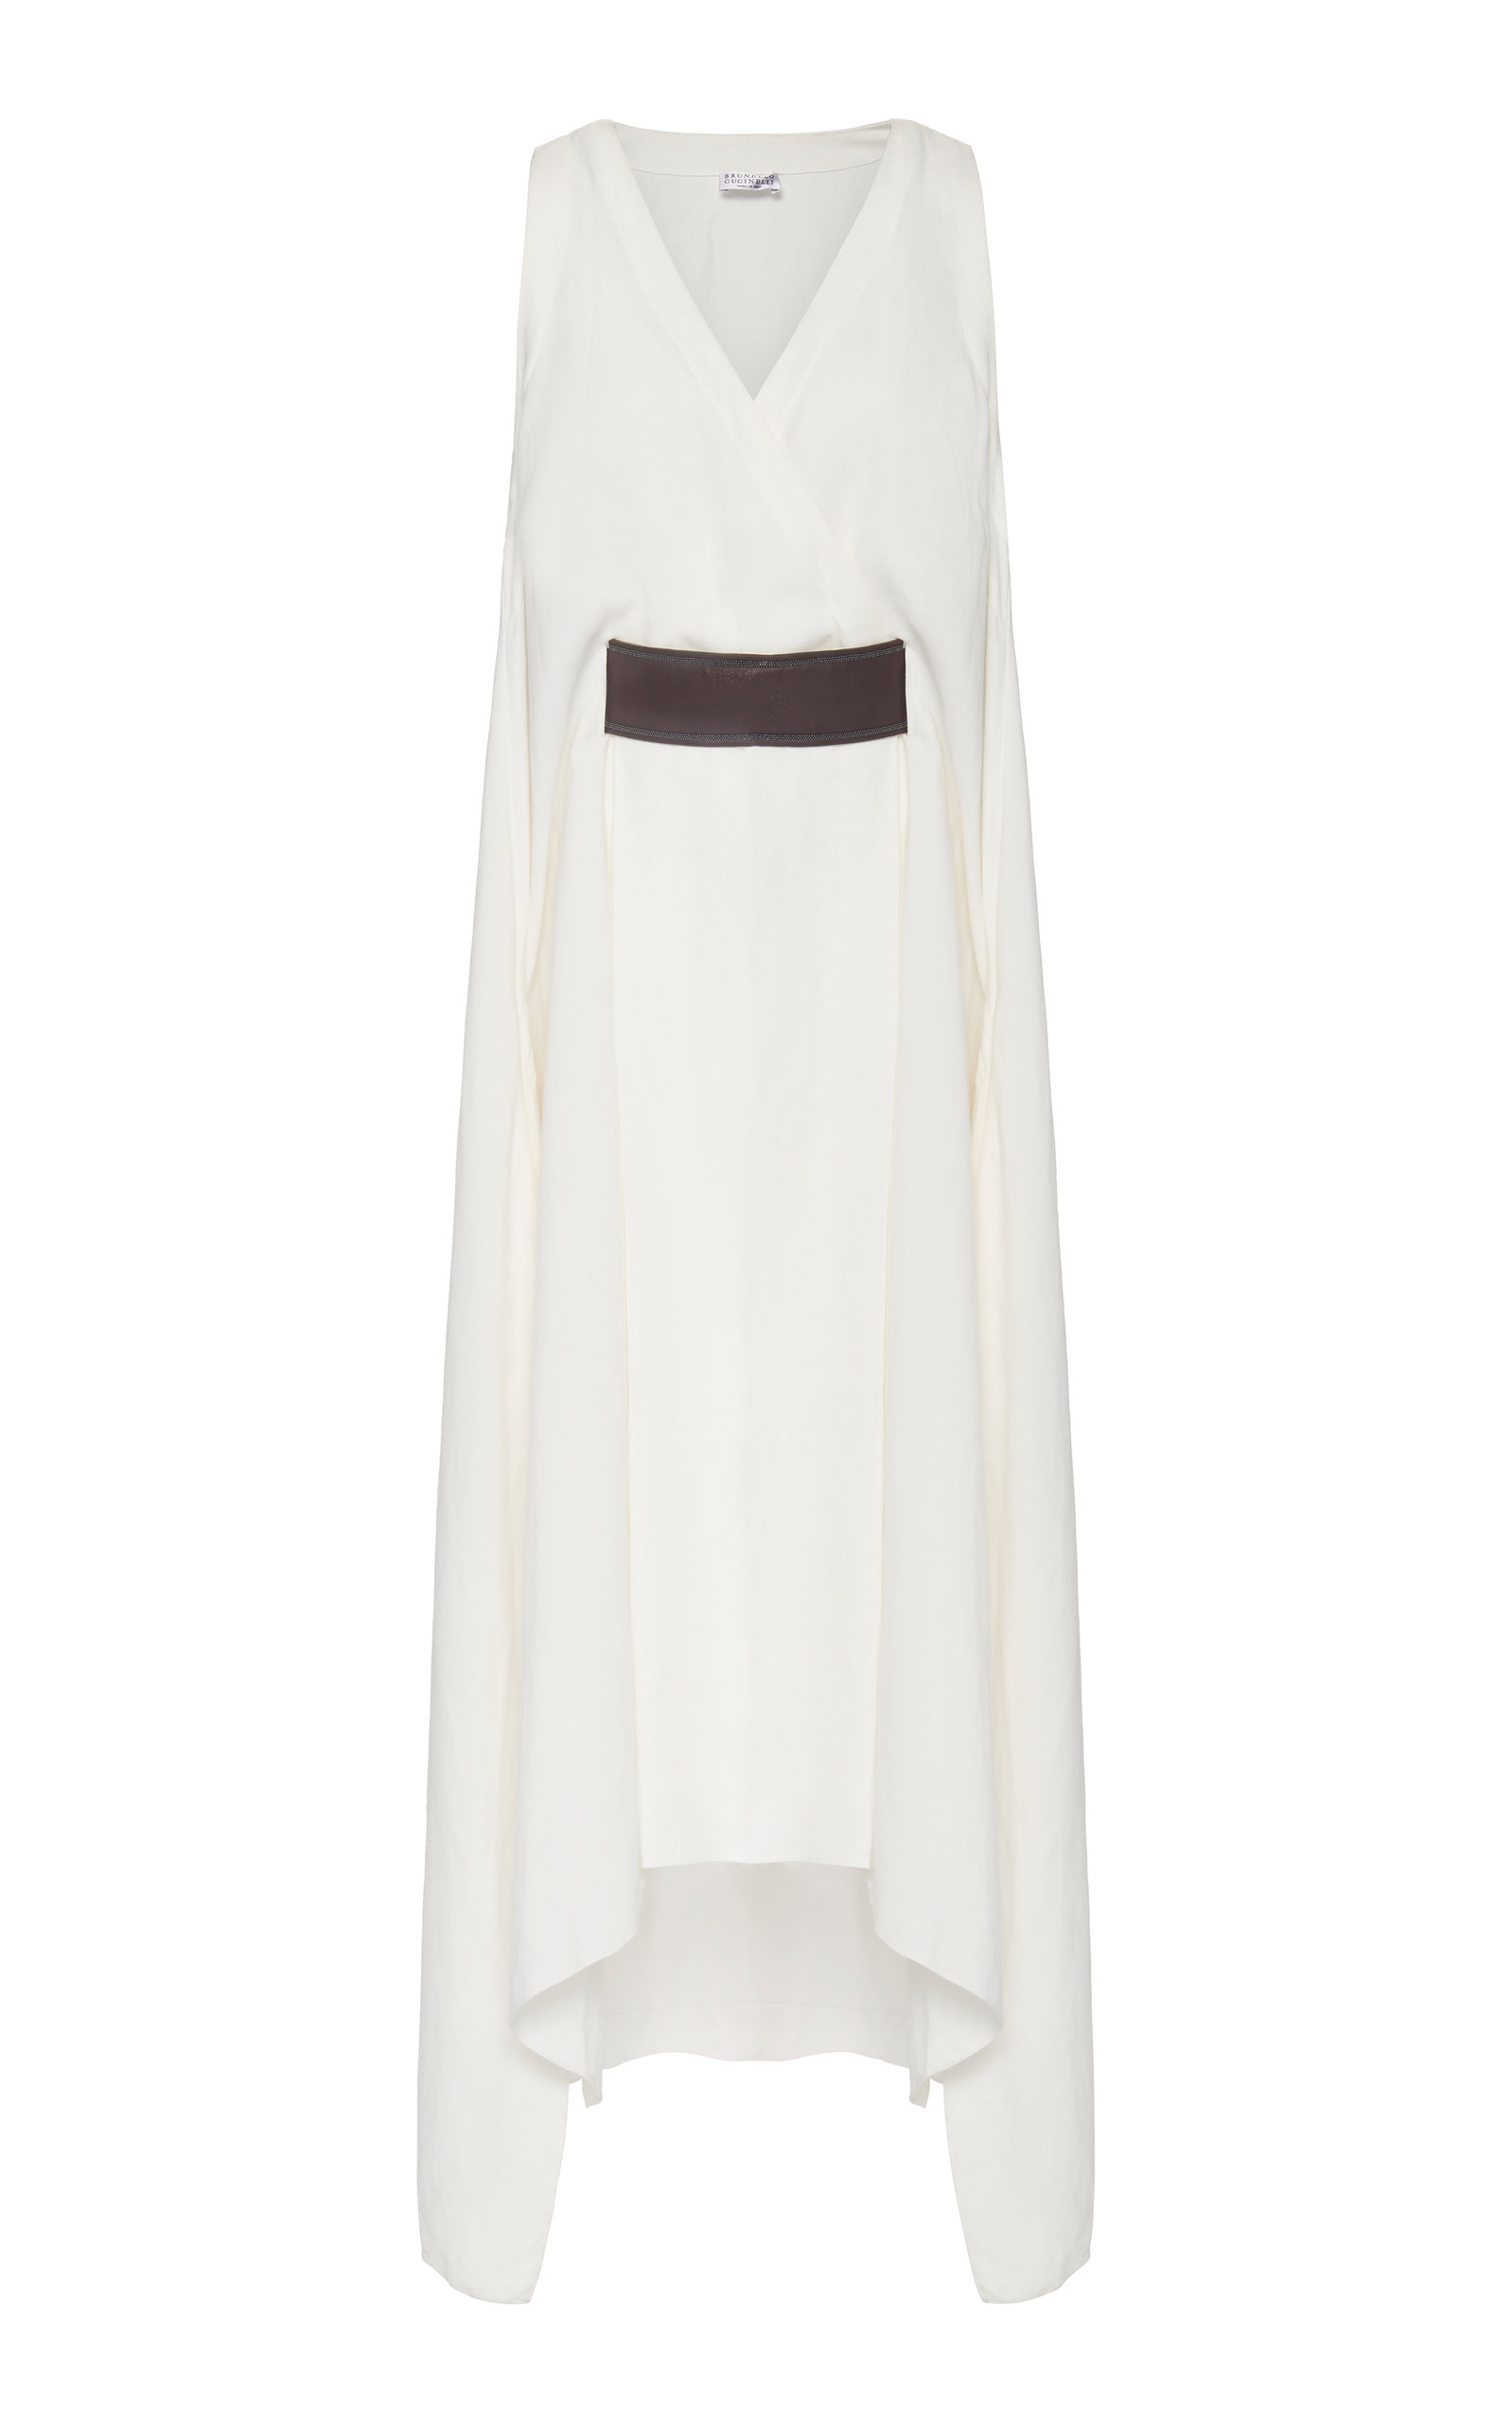 Buy Brunello Cucinelli Belted Sleeveless V-Neck Crepe Midi Dress online, shop Brunello Cucinelli at the best price